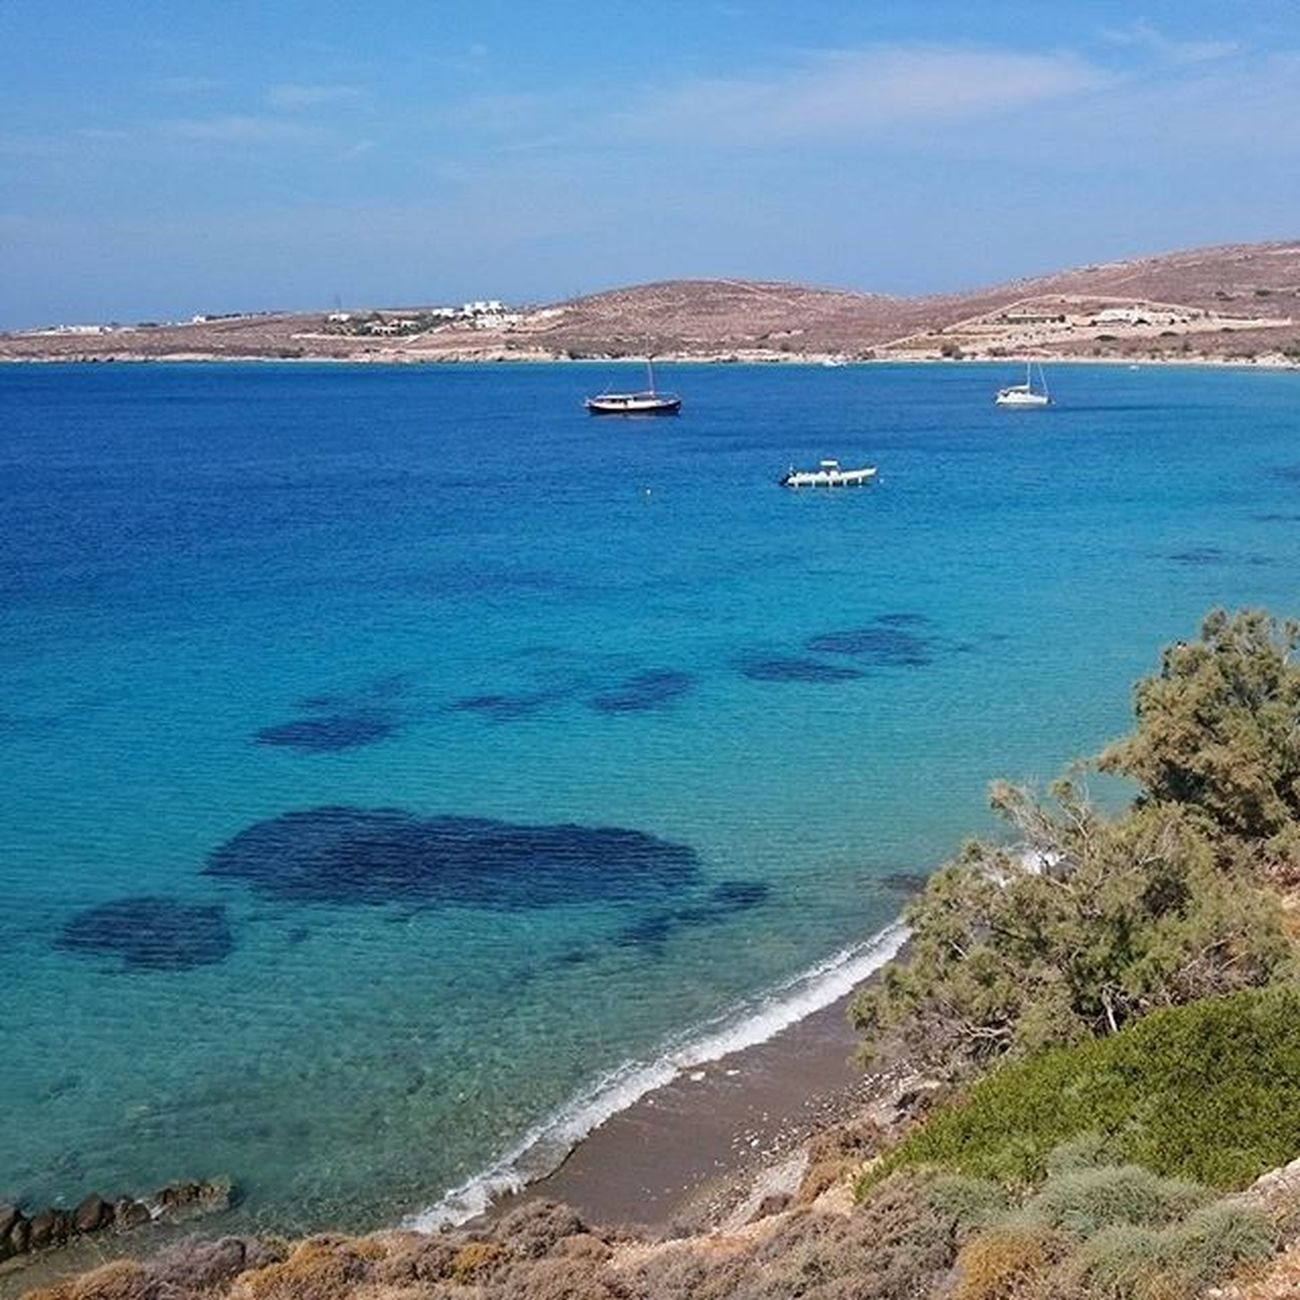 GOING TO KRIOS BEACH, PAROS. THE WALK. THE VIEW. Krios Kriosbeach Pariokia Sun Sand Summer Iloveparos Paros Paro Parosisland Greekislands Greece Greecestagram Summeringreece Blue Enjoy Cyclades_islands Cyclades View Beach